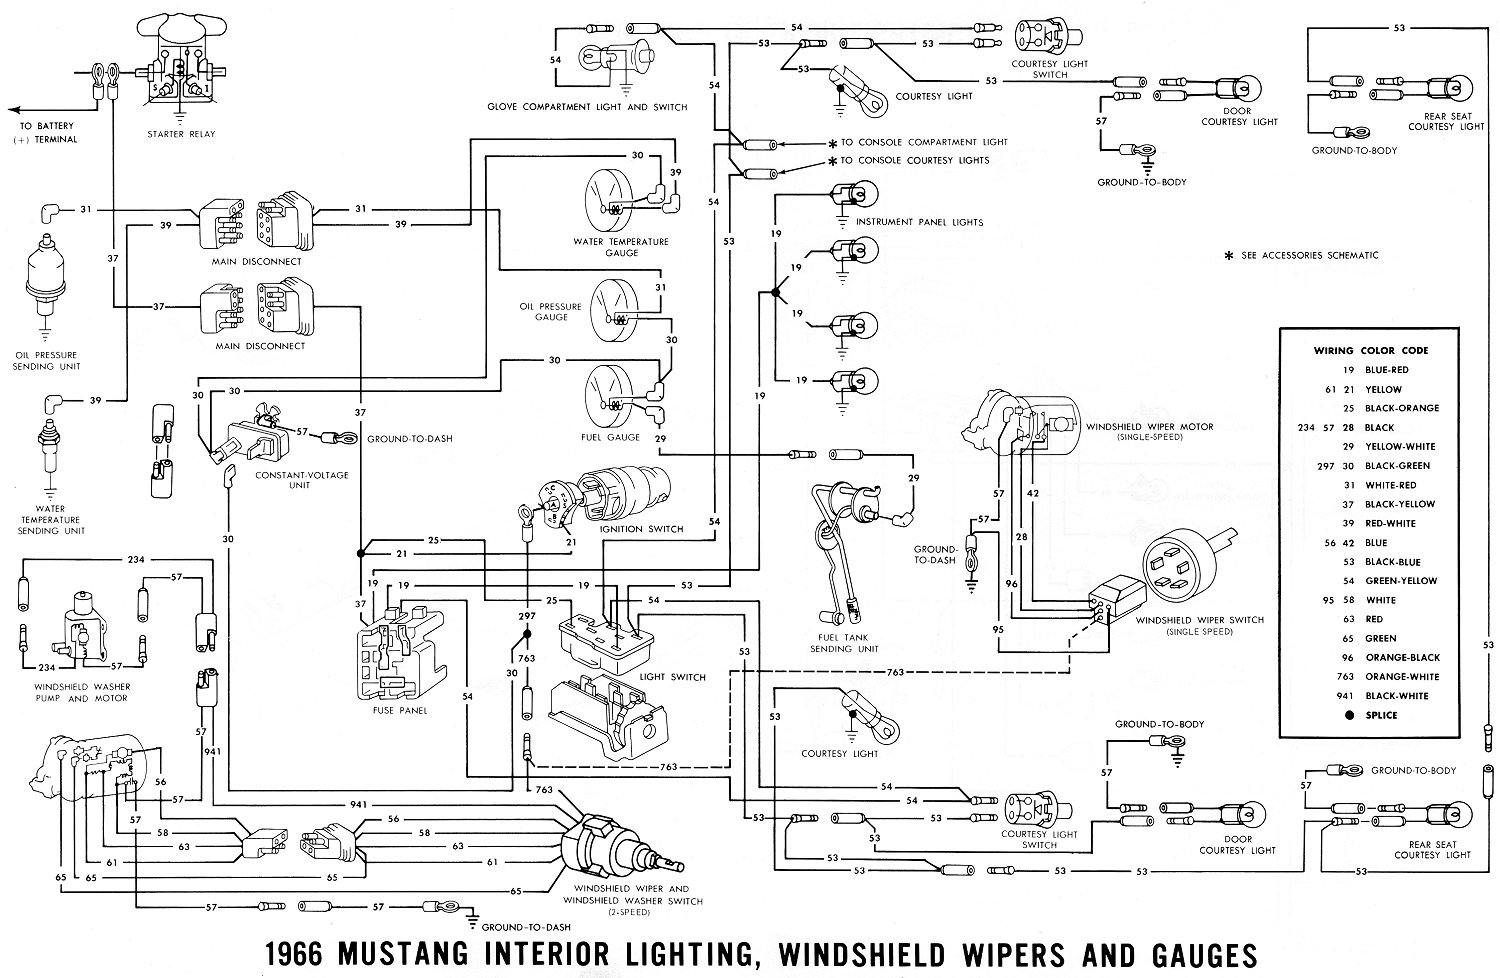 66inter1 1966 mustang wiring diagram 1966 mustang ignition wiring diagram 1965 ford mustang wiring diagrams at mifinder.co